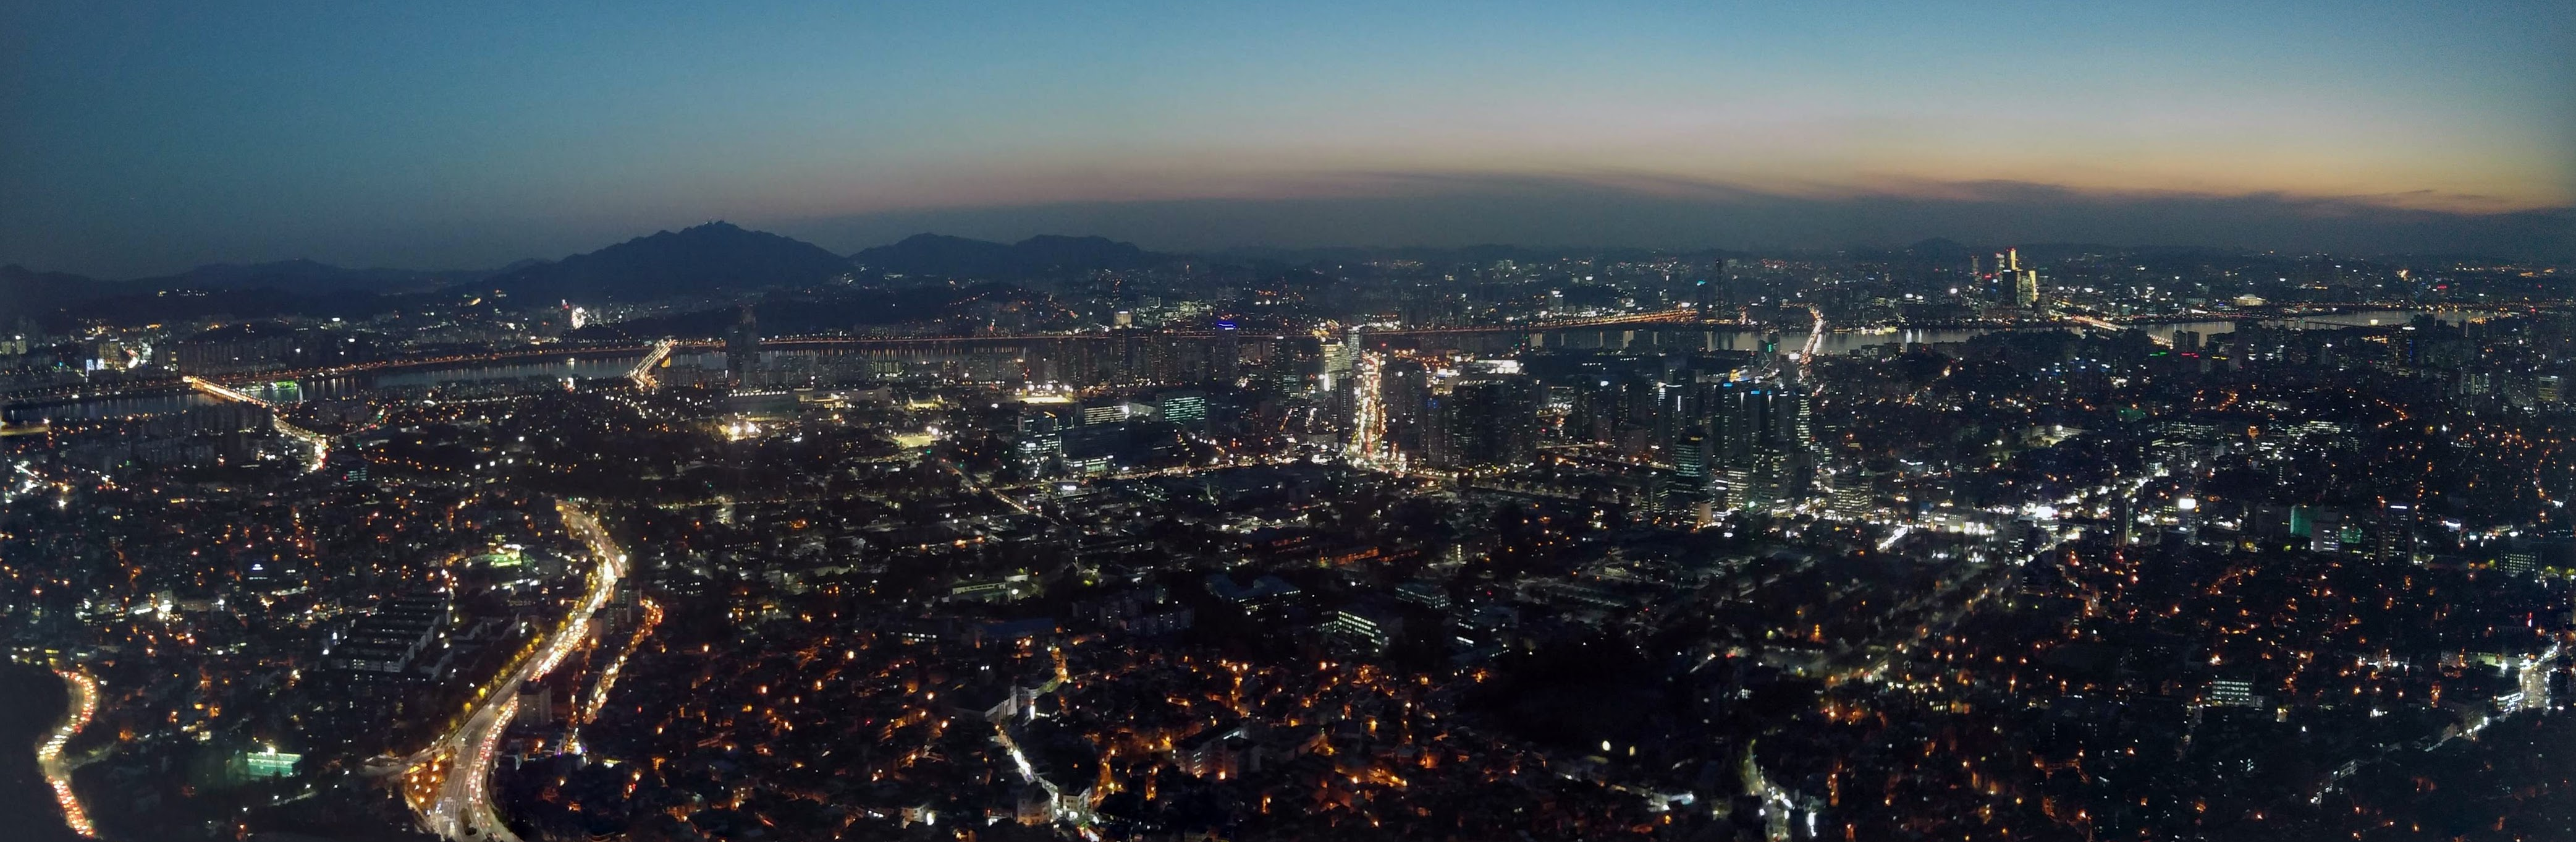 Seoul viewed from Namsan tower after sunset